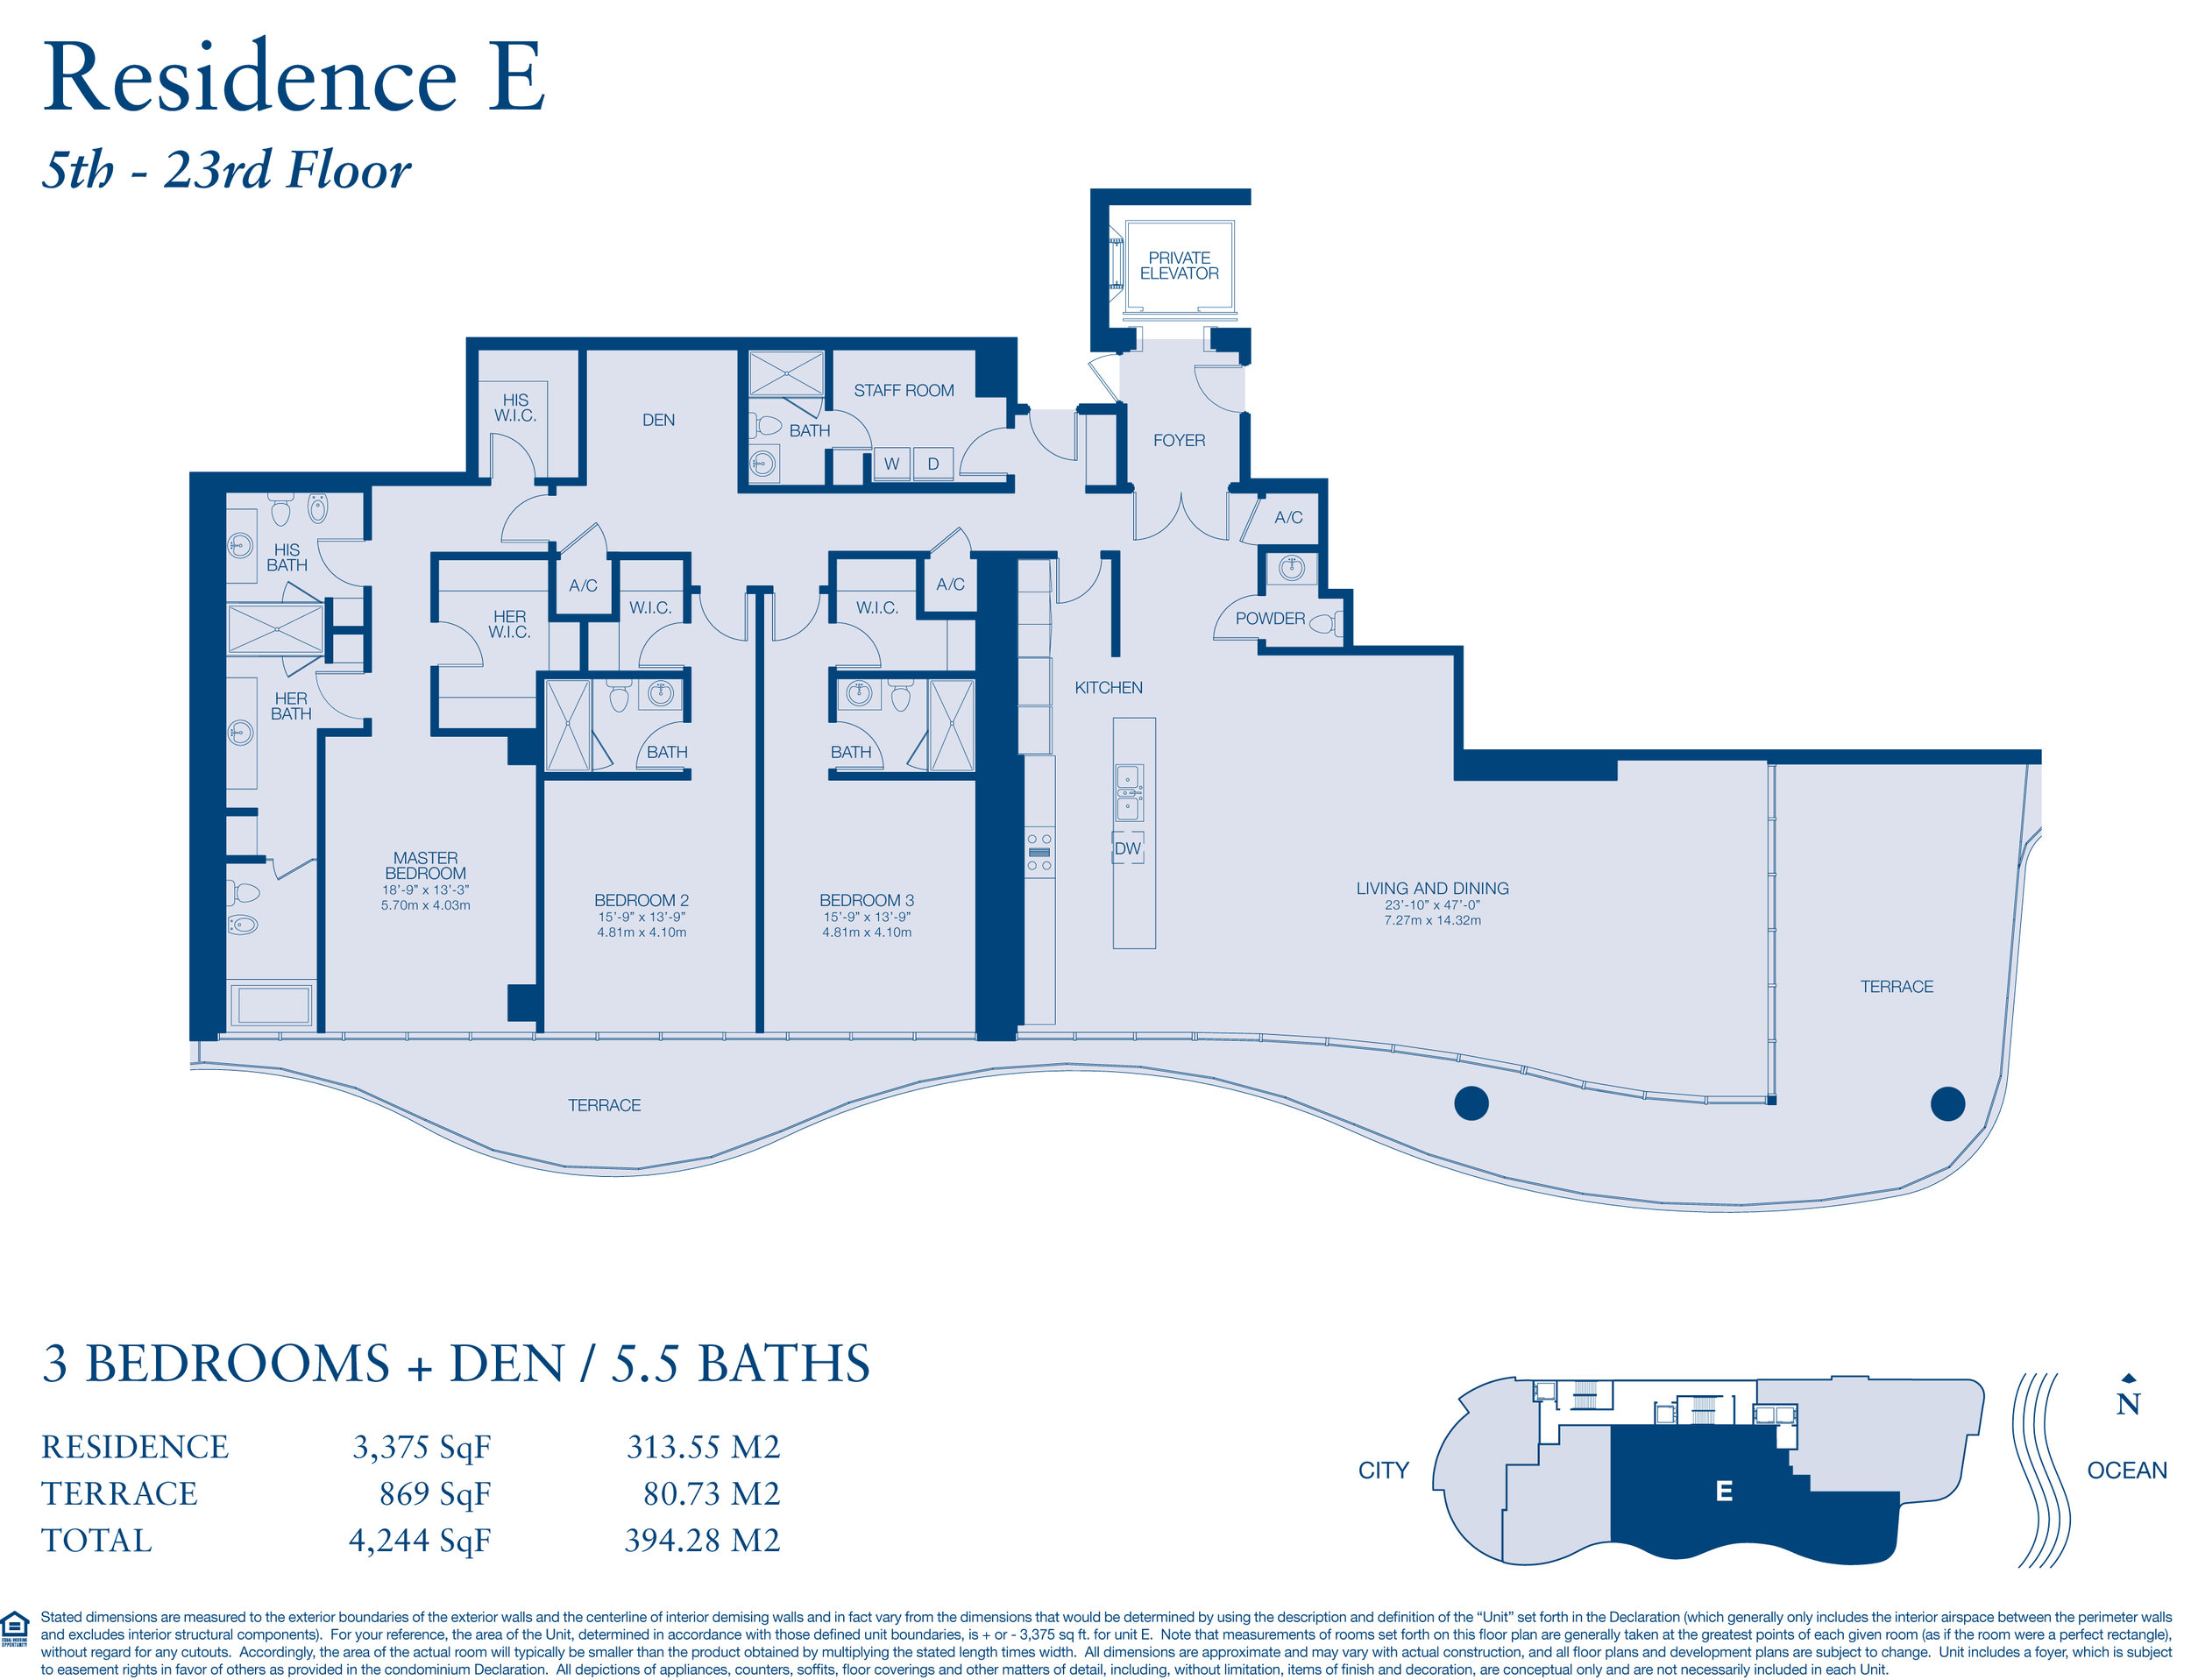 E-Brochure-with-Floor-Plans-resE.jpg